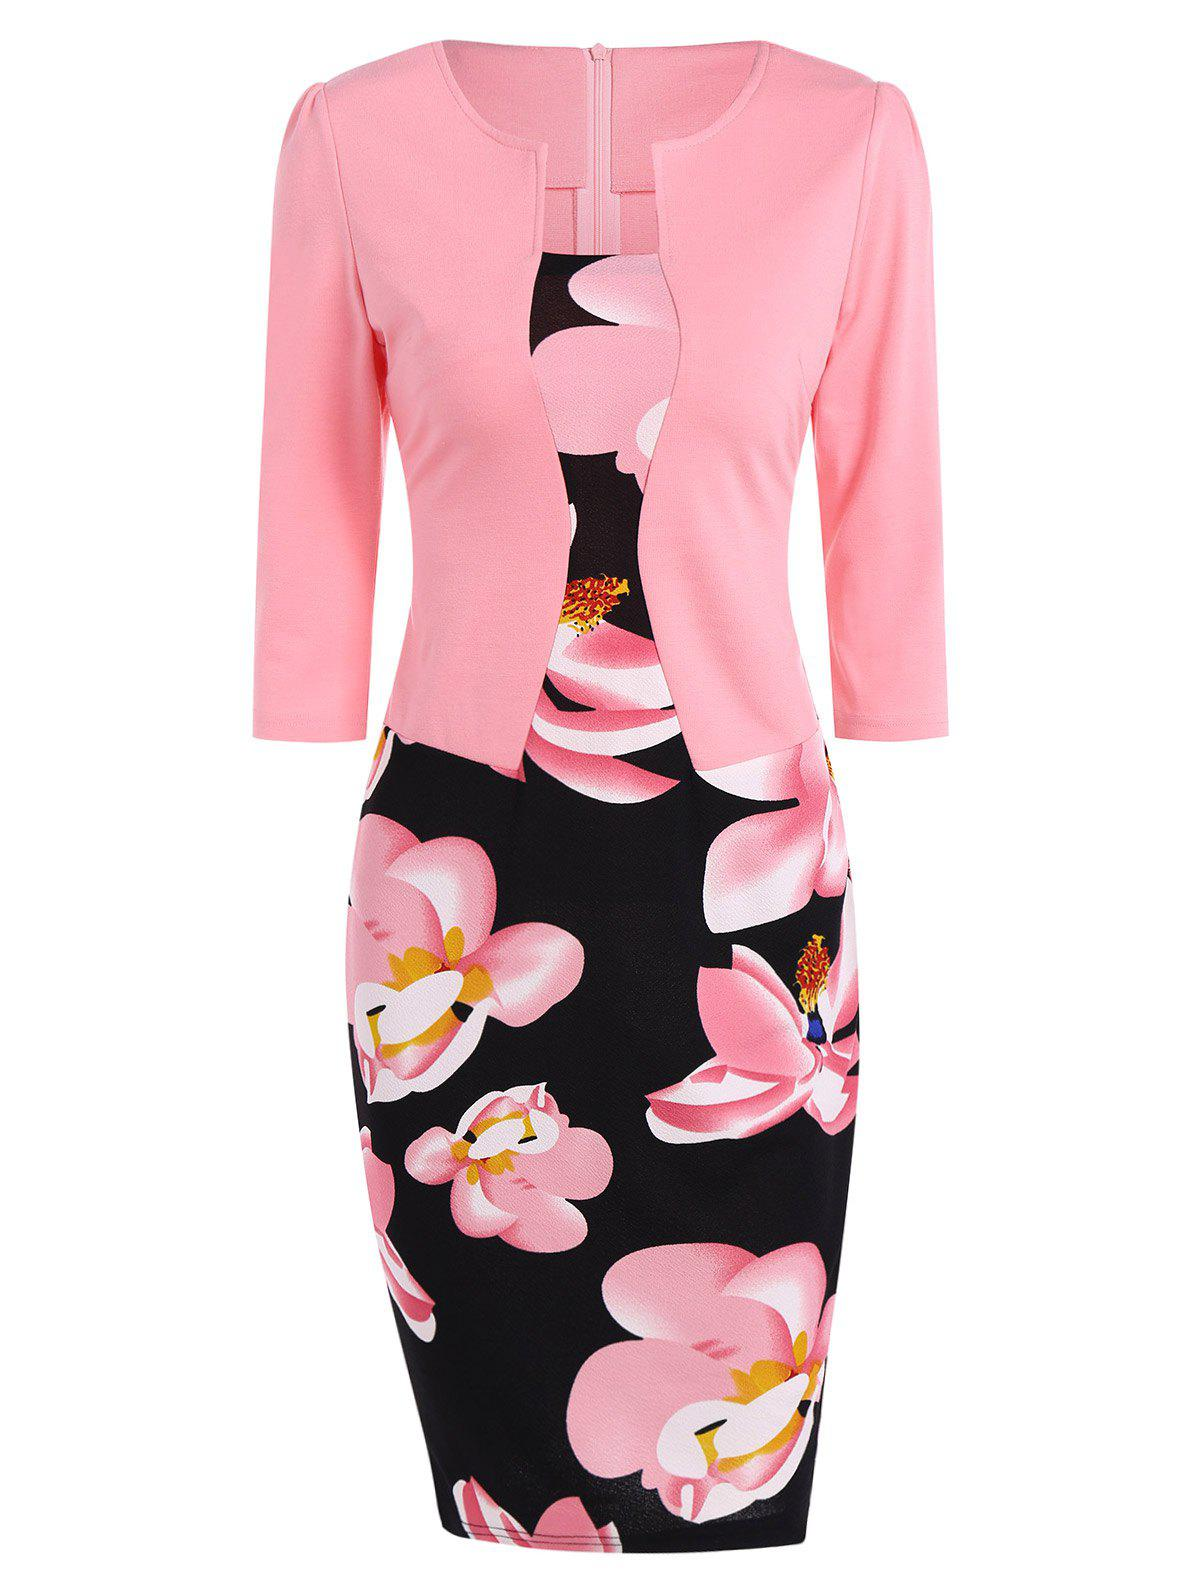 Floral Sheath Knee Length Pencil Work Dress - PINK XL